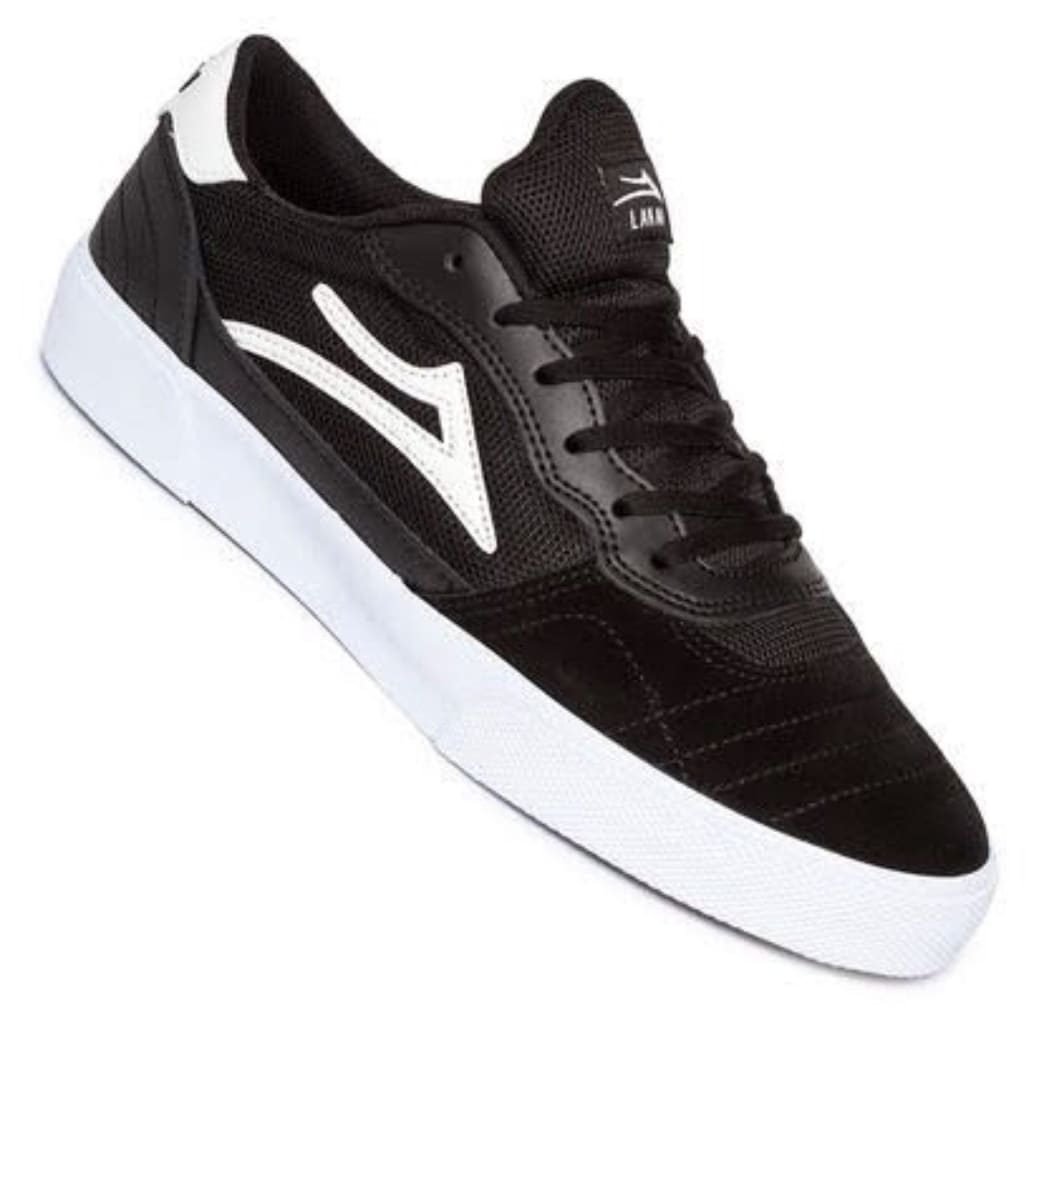 Lakai Cambridge Black White Suede | Shoes by Lakai 1